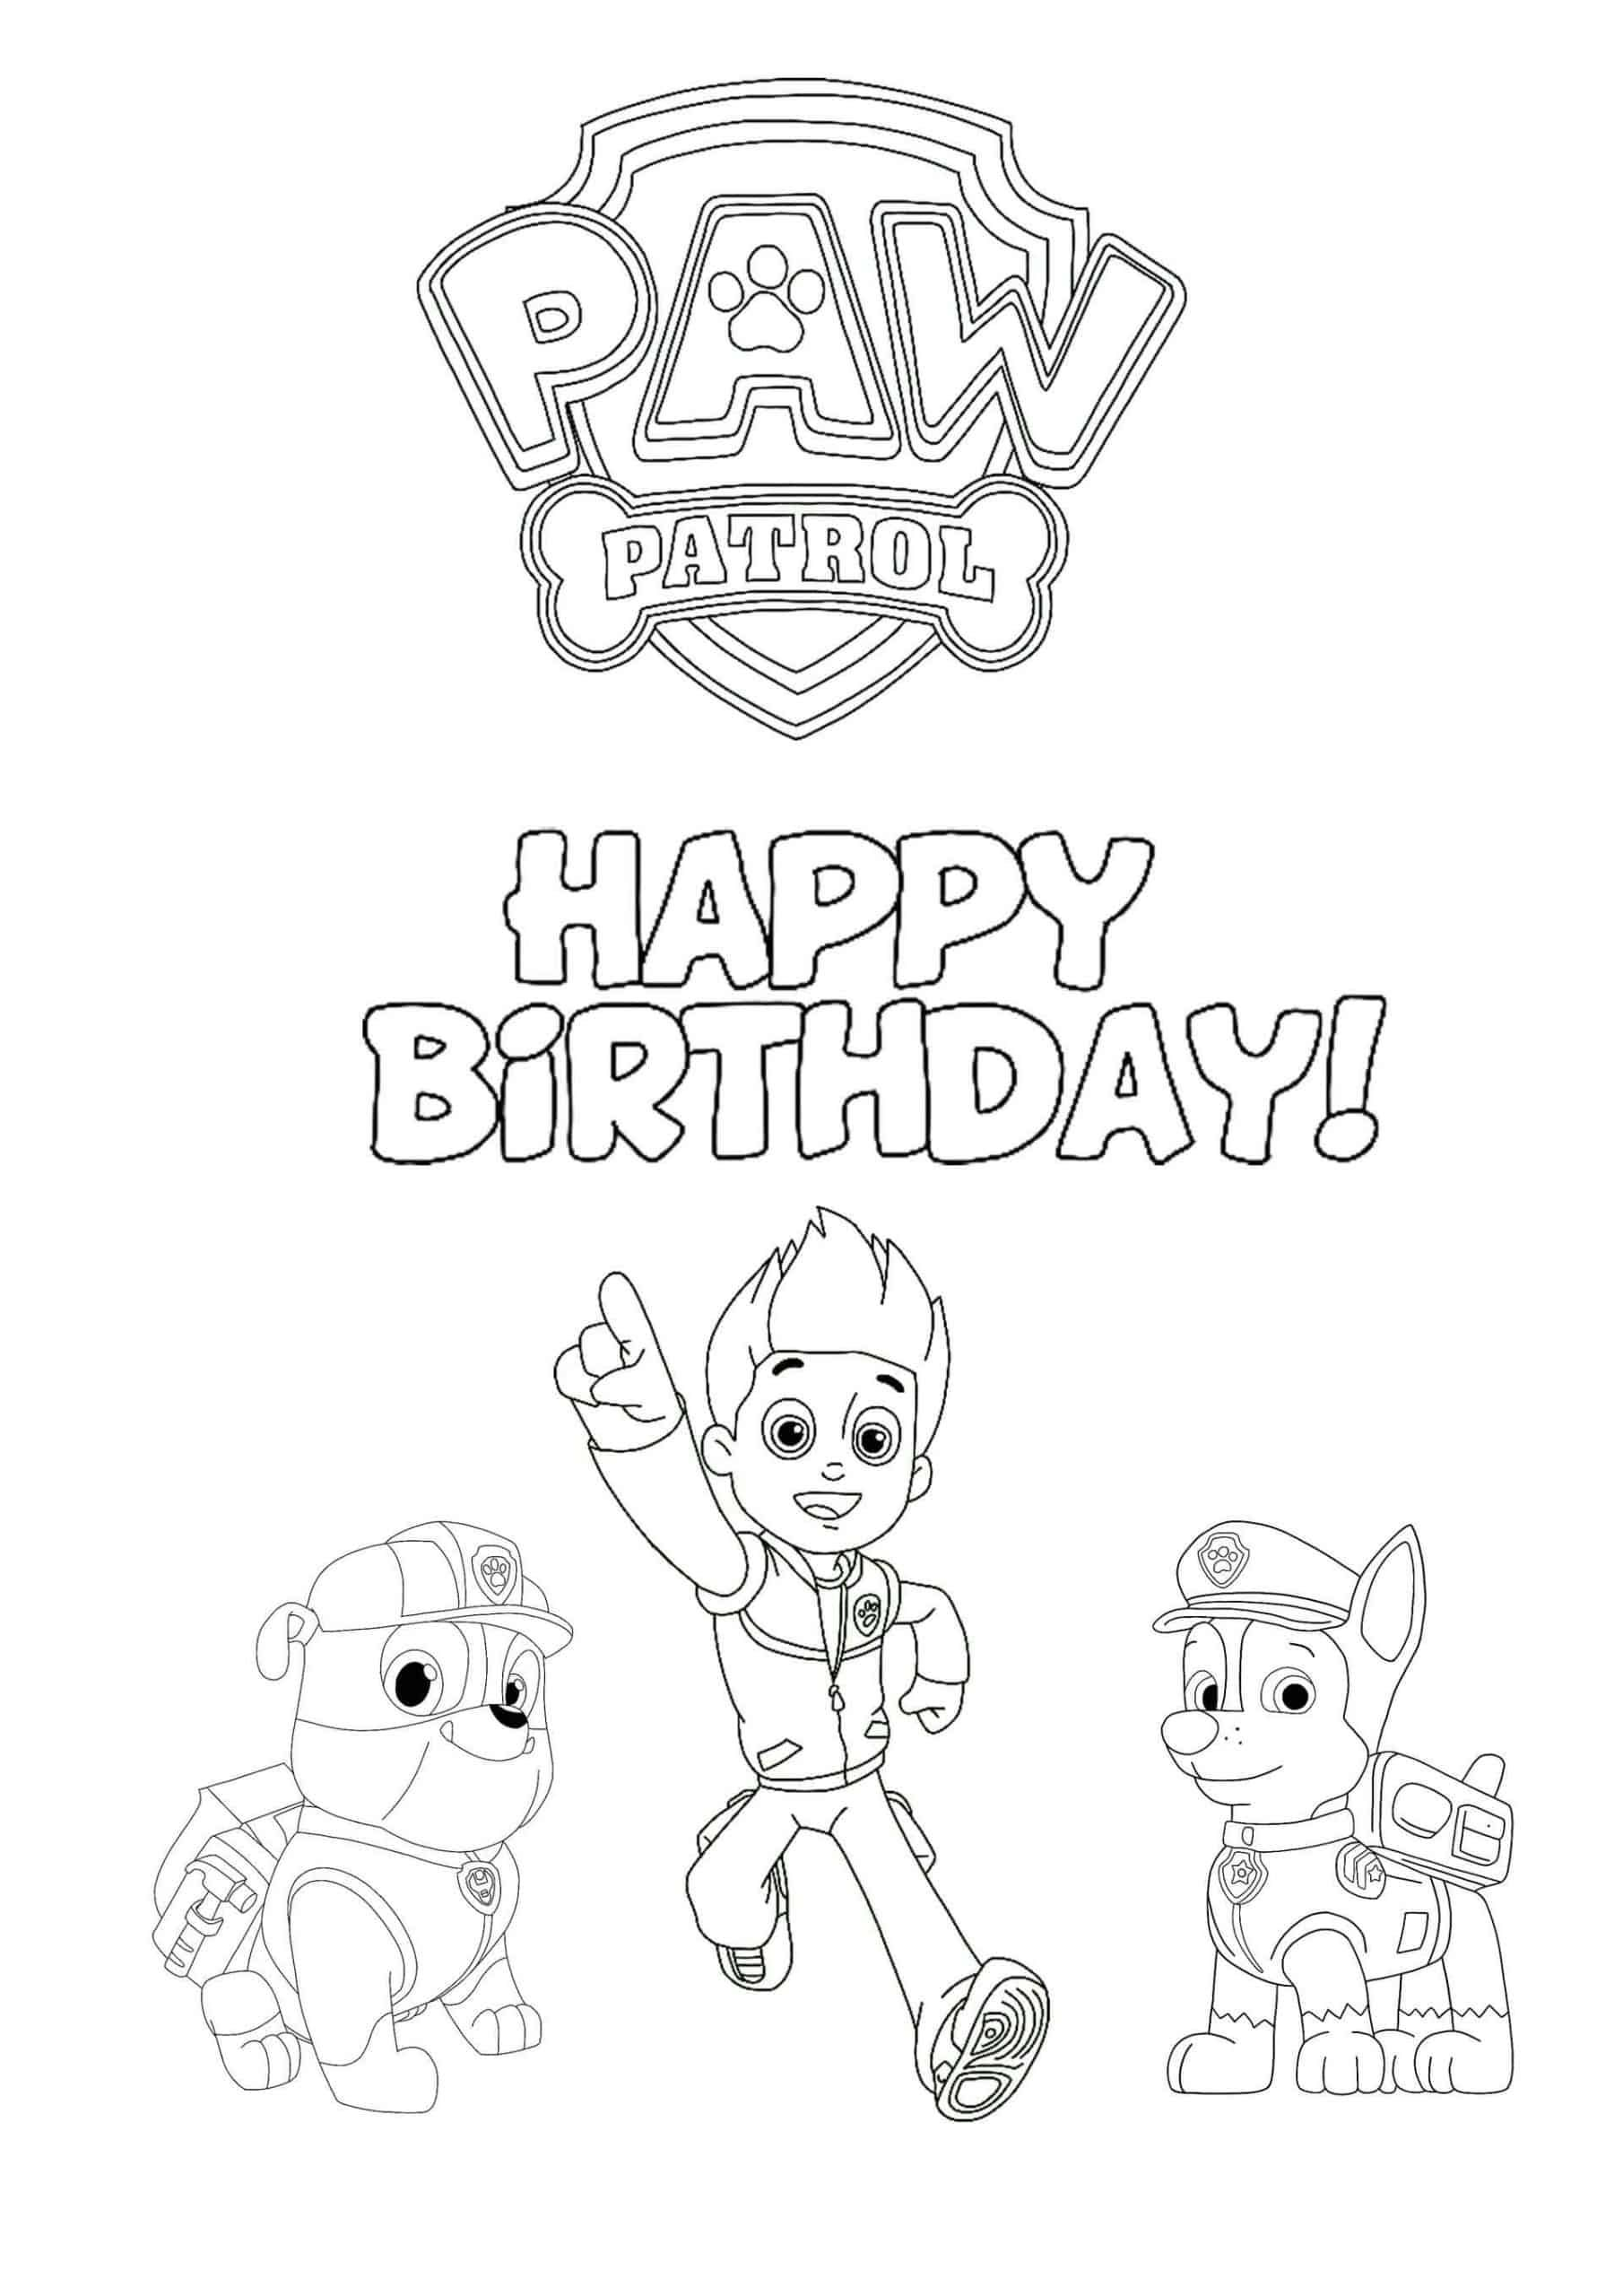 Paw Patrol Happy Birthday coloring page  Birthday coloring pages